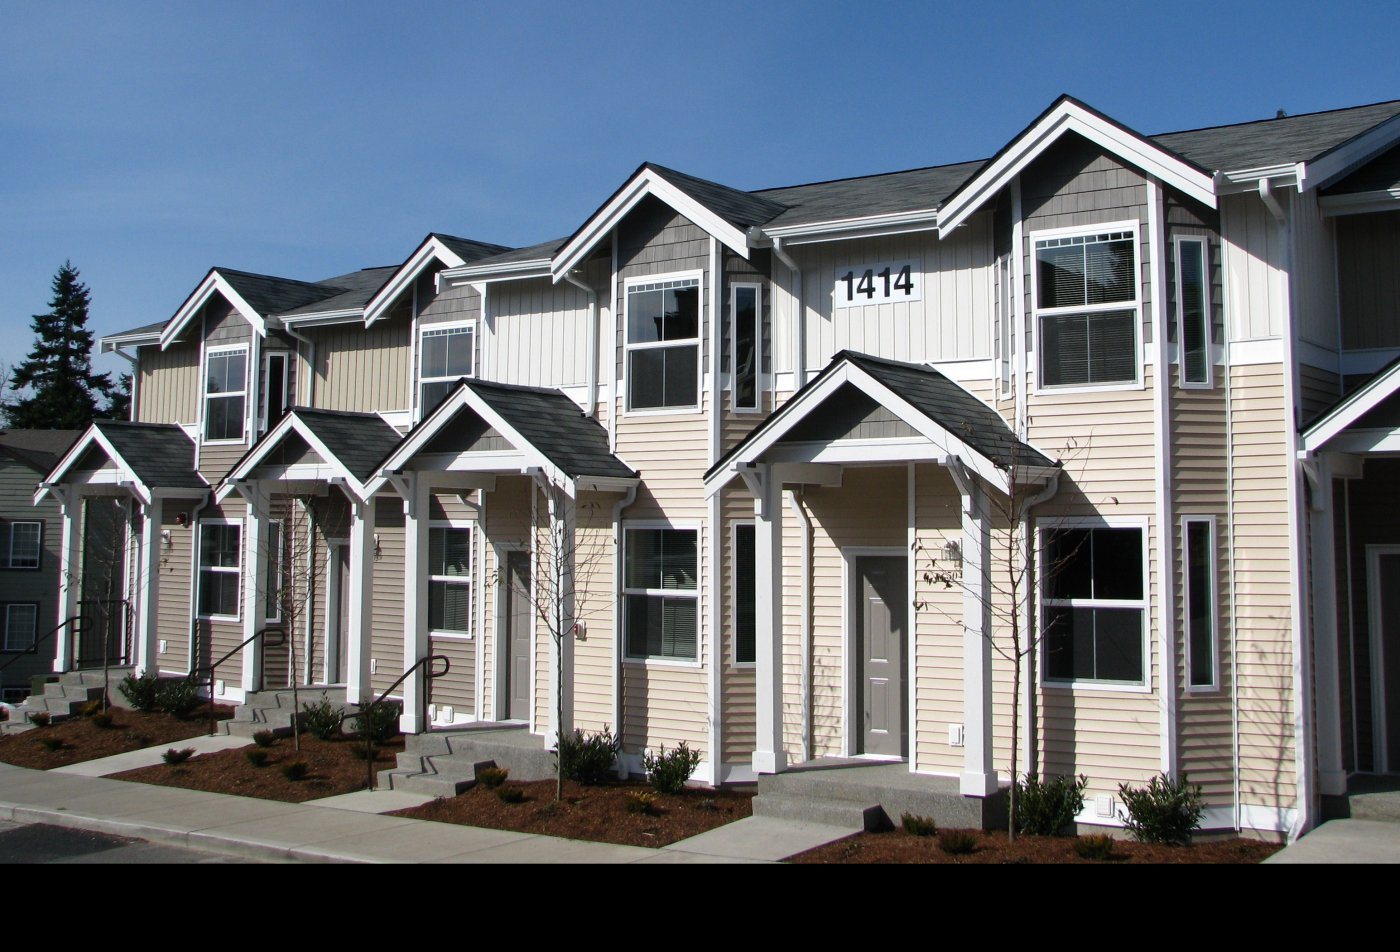 Silverdale Ridge Apartments | Silverdale Ridge